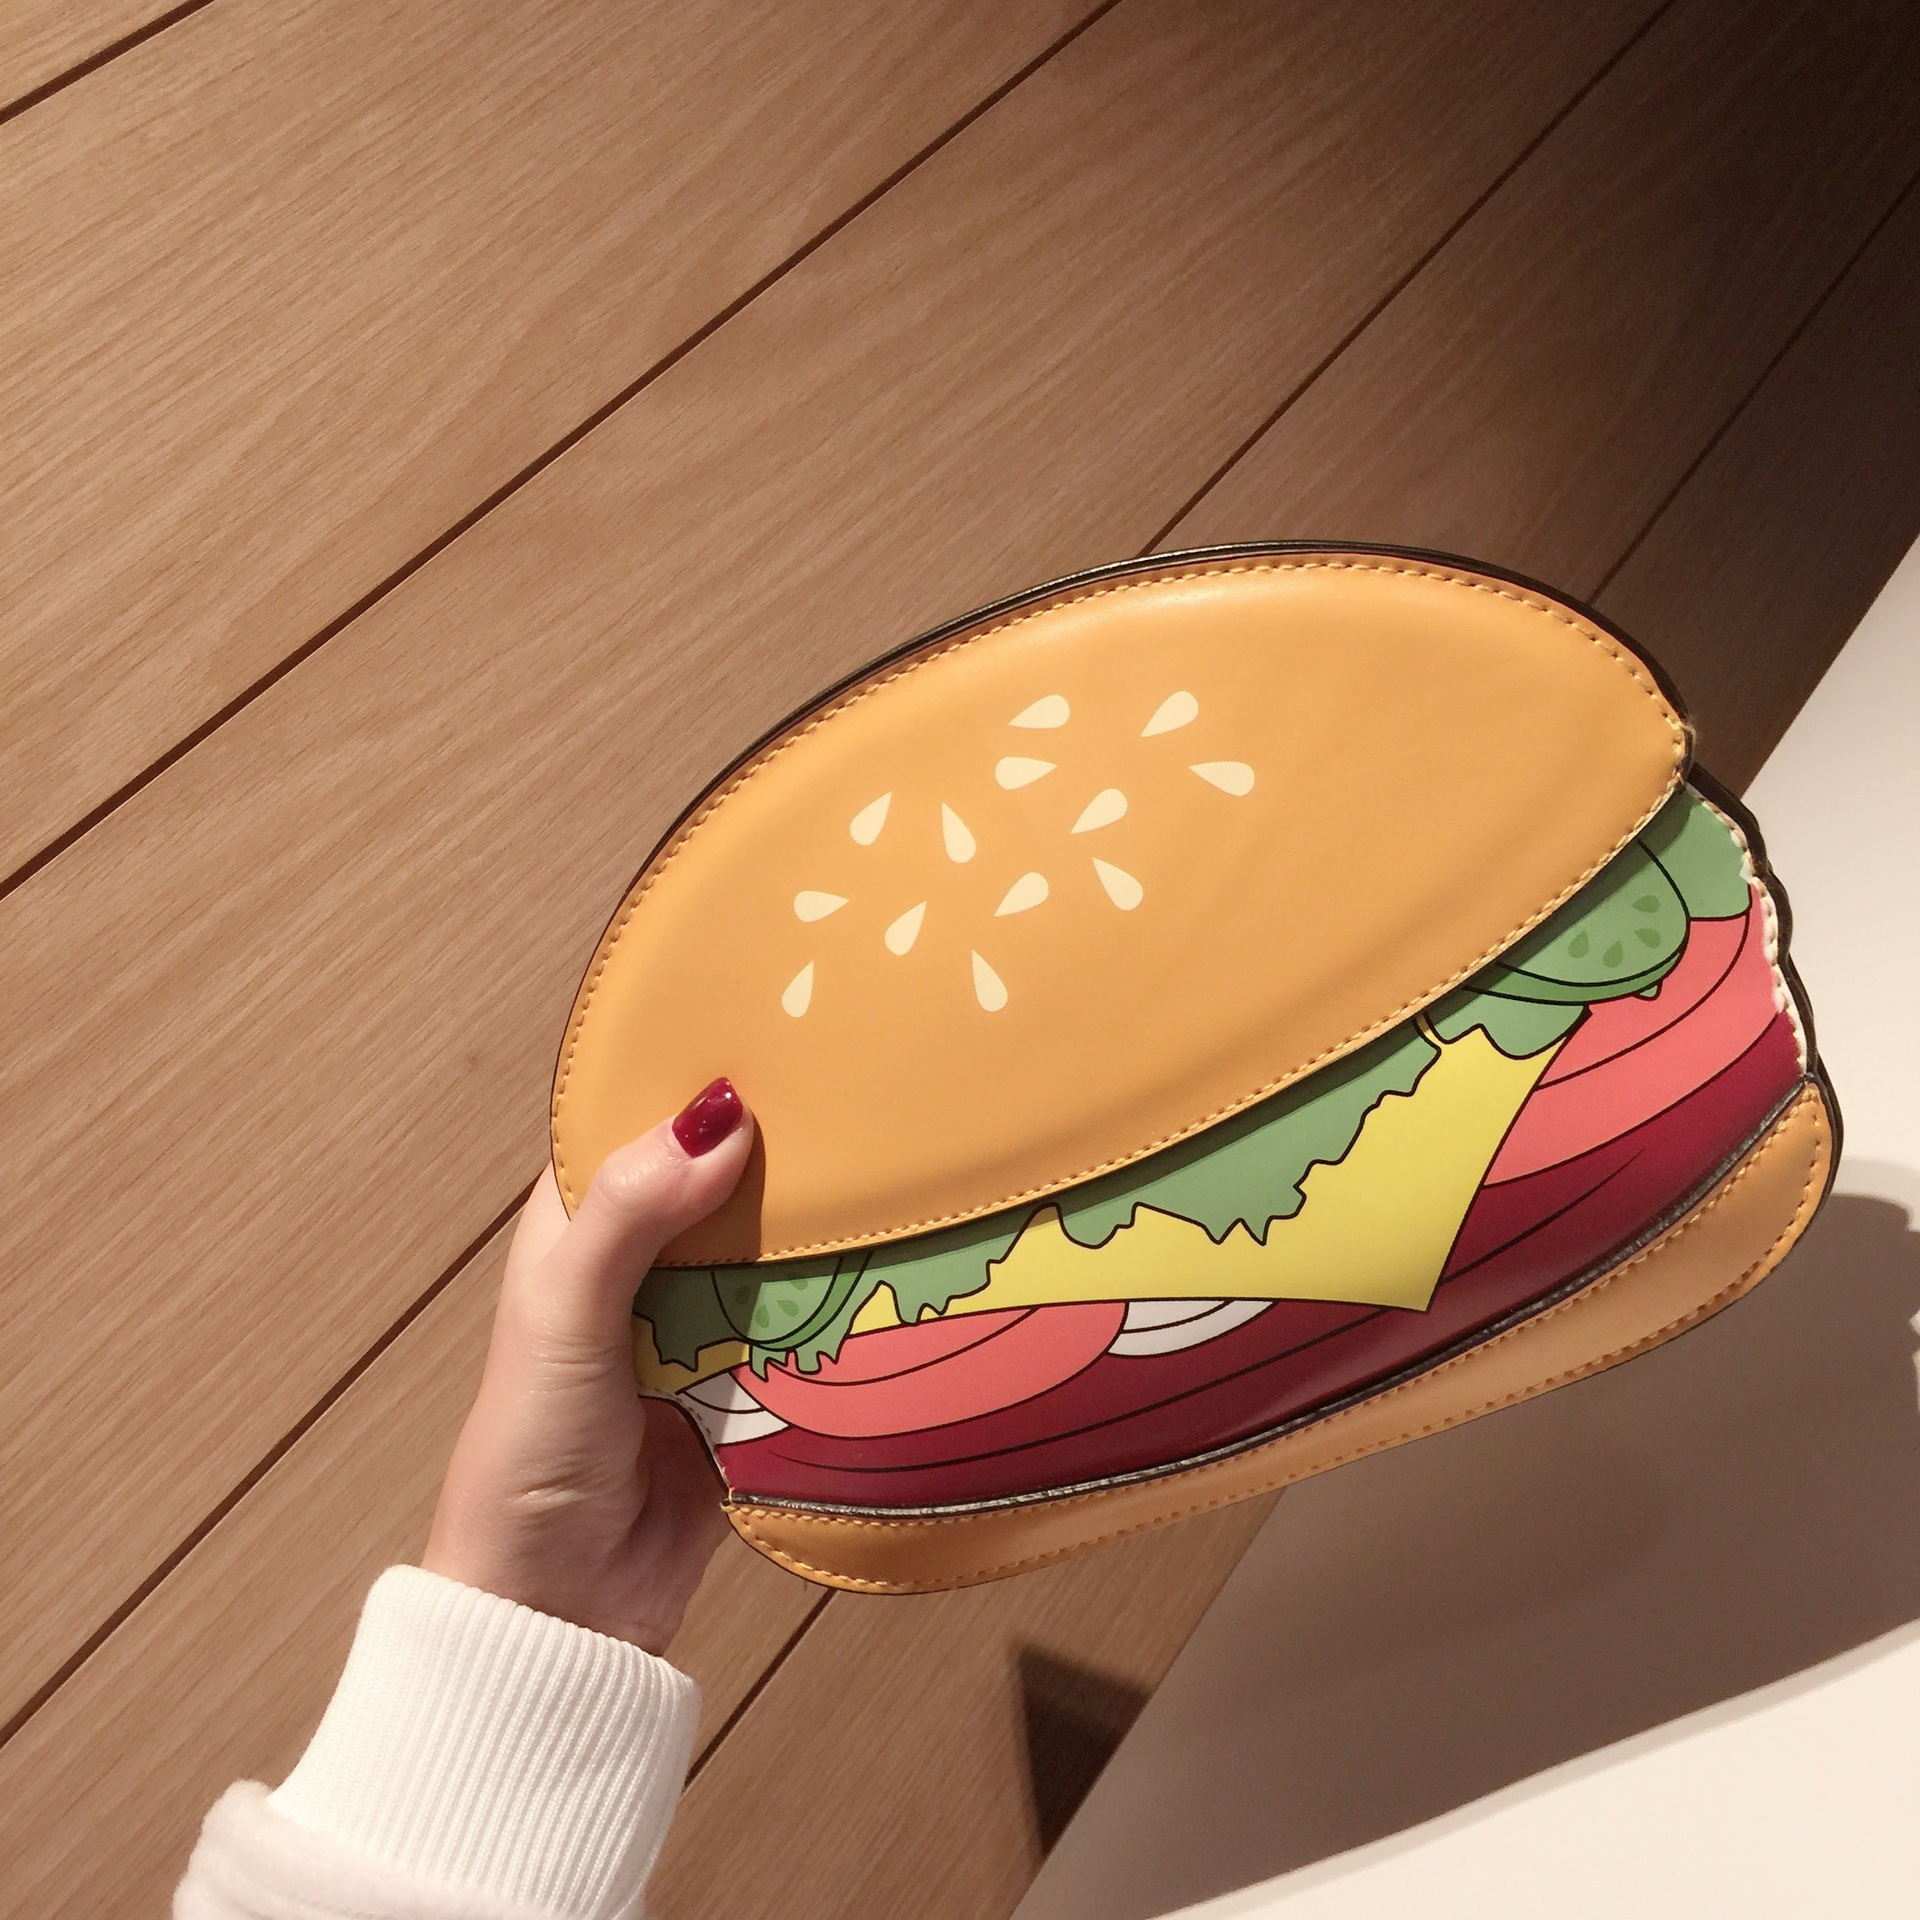 3D Cute Cartoon Women Shoulder Handbag Hamburger Ice cream Cake Bags Small Chain Clutch Crossbody Girls Messenger Bag Watermelon